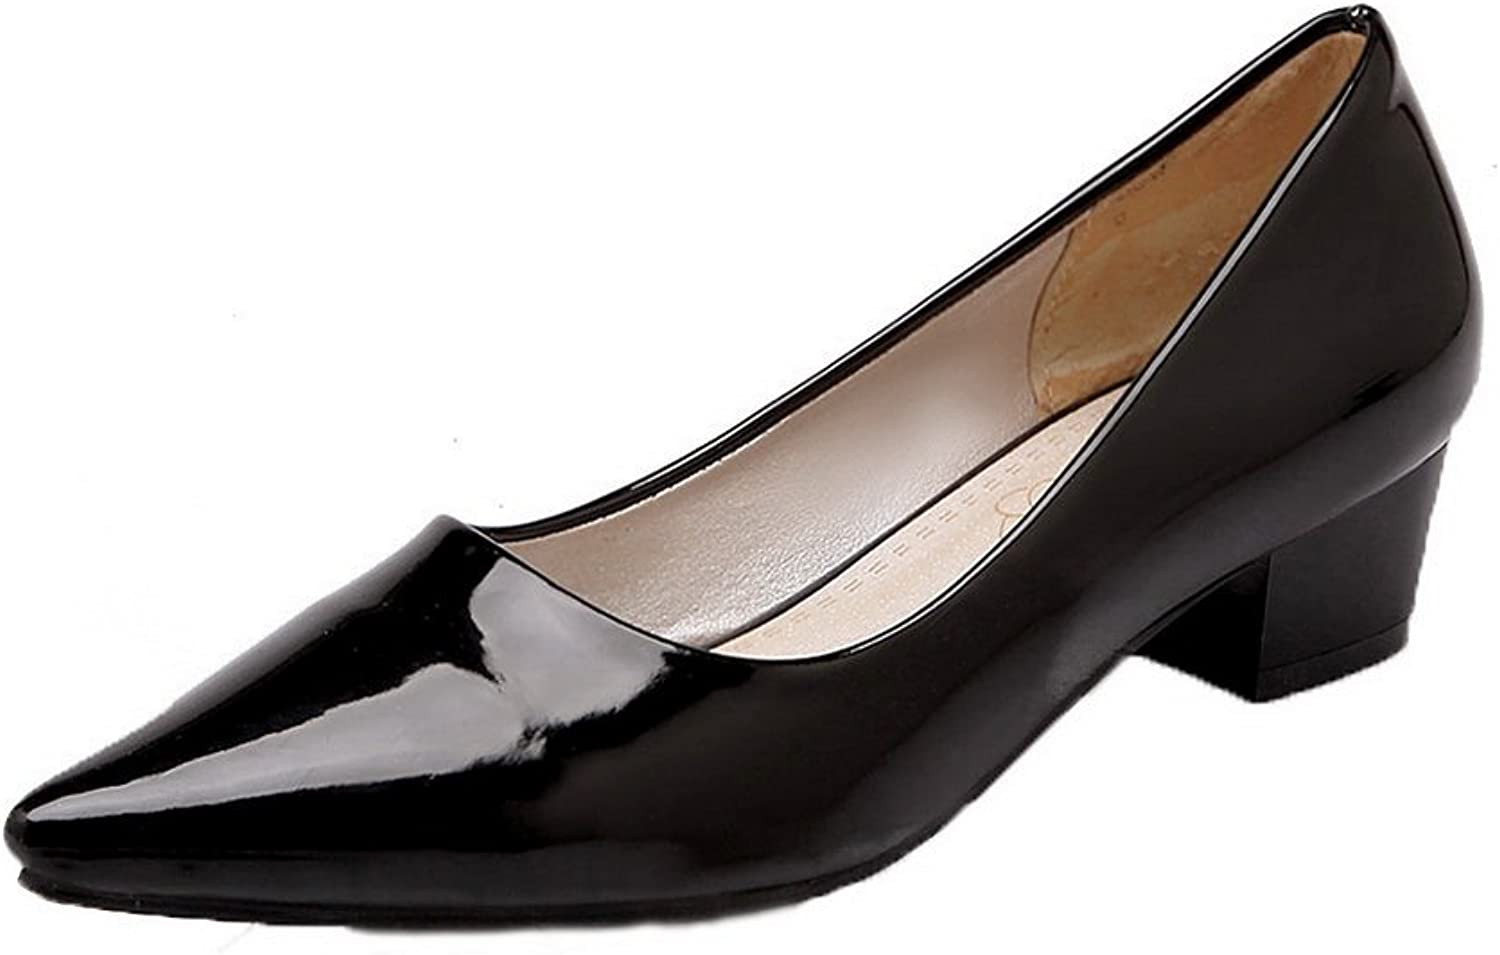 WeiPoot Women's Patent Leather Low-Heels Closed-Toe Solid Pull-On Pumps-shoes